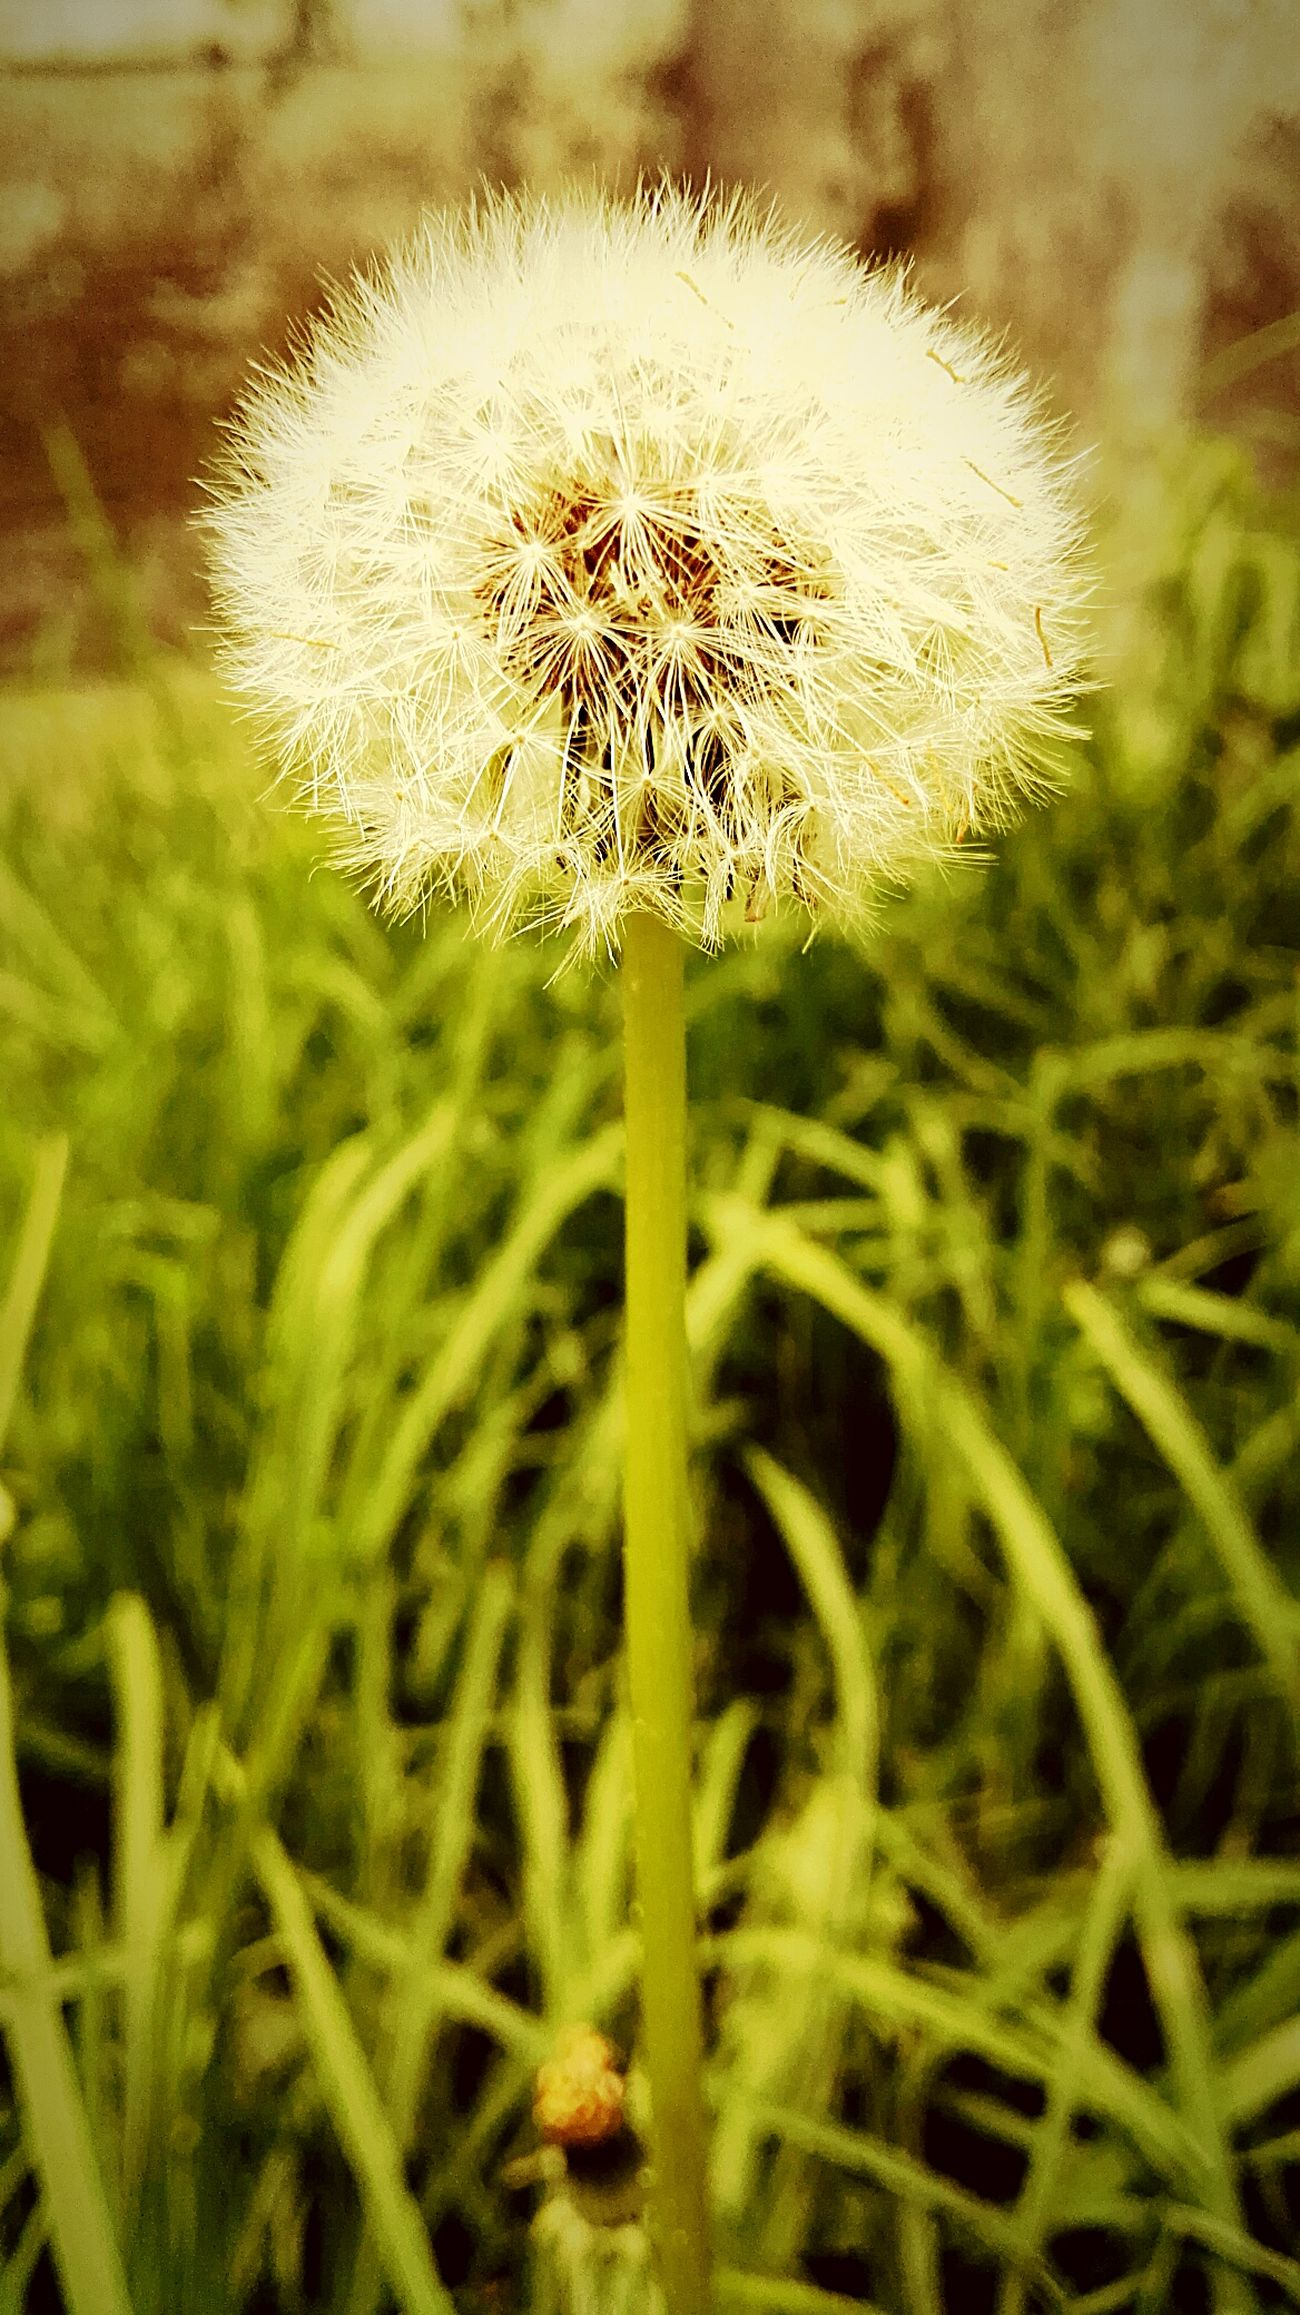 Garden Garden Flowers Garden Photography My Garden My Garden @my Home My Garden Is A Wonderland My Garden 😊 Enjoying Life Nature Beauty In Nature Grass No People Close-up Dandelion Seed Field Fragility Plant Day Freshness Growth Nature HuaweiP8 Enjoying Life